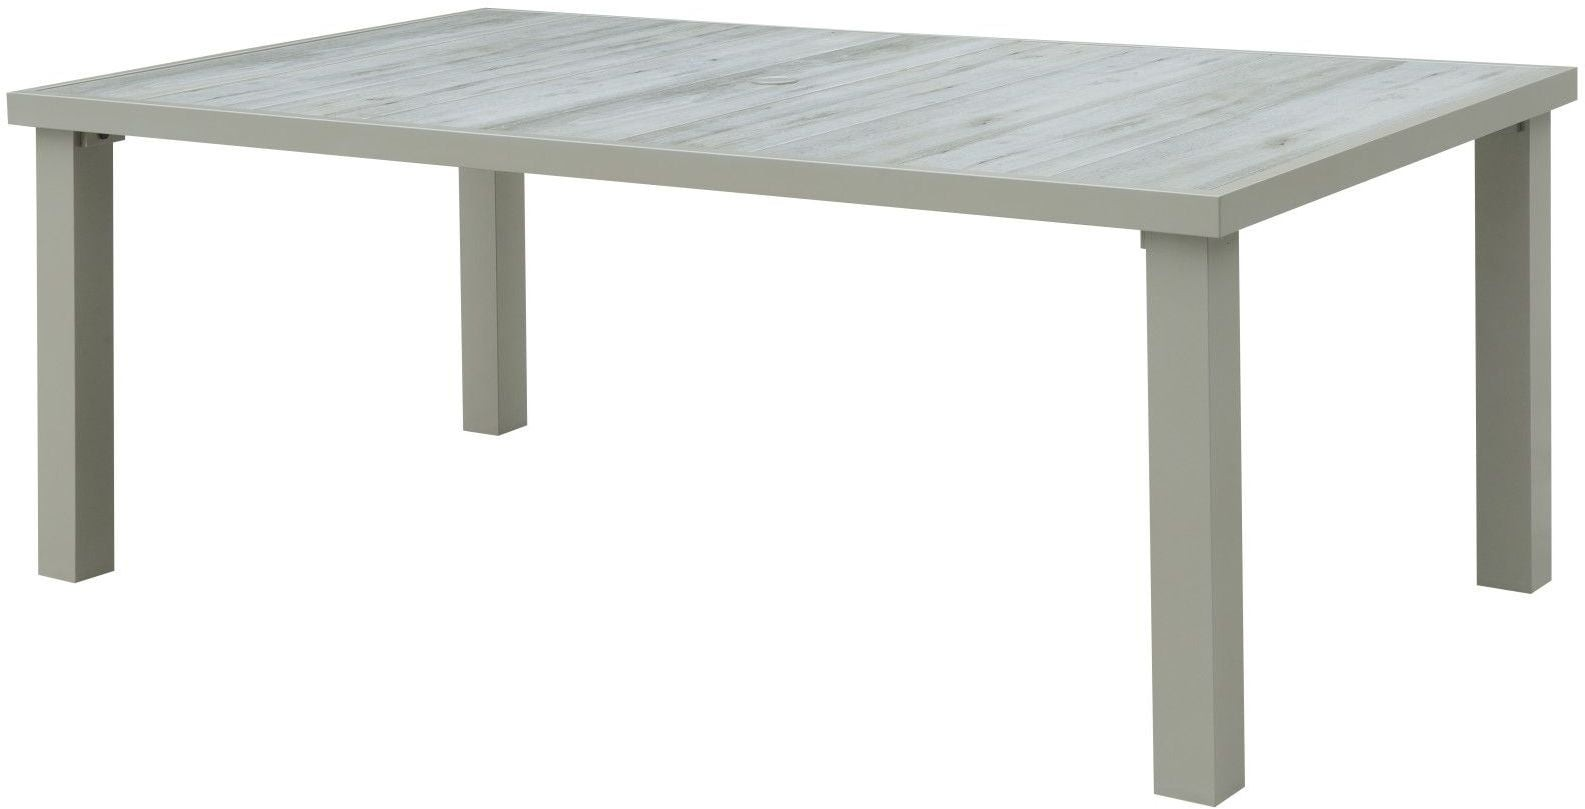 Sheridan Champagne Porcelain Outdoor Umbrella Dining Table from